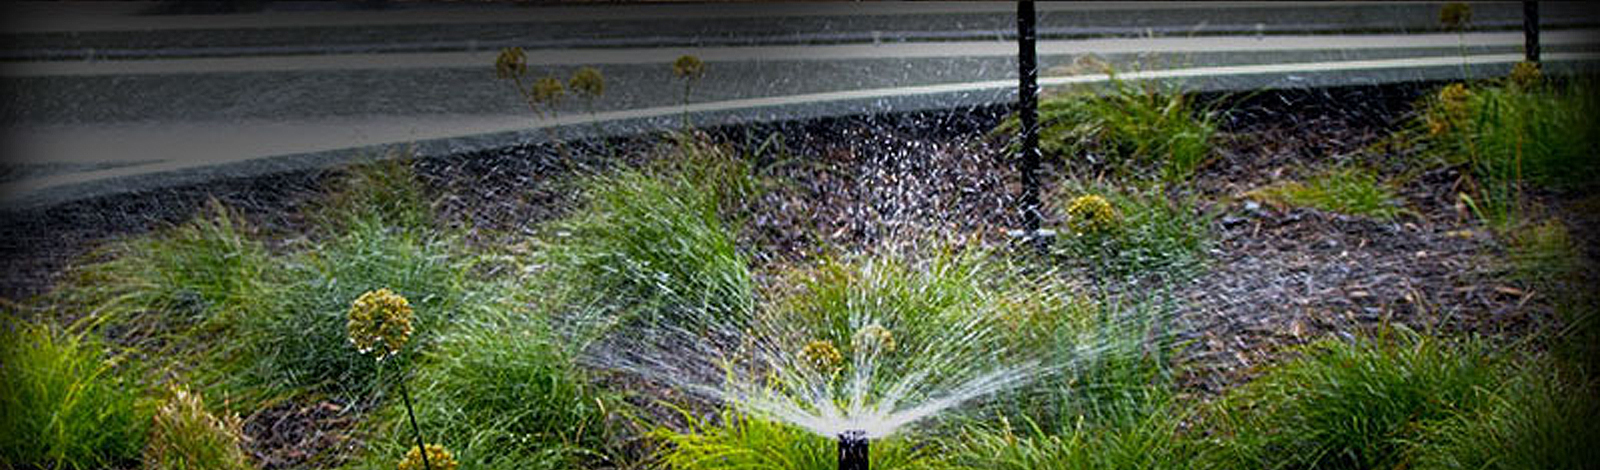 Photo of an irrigation system in a commercial setting.